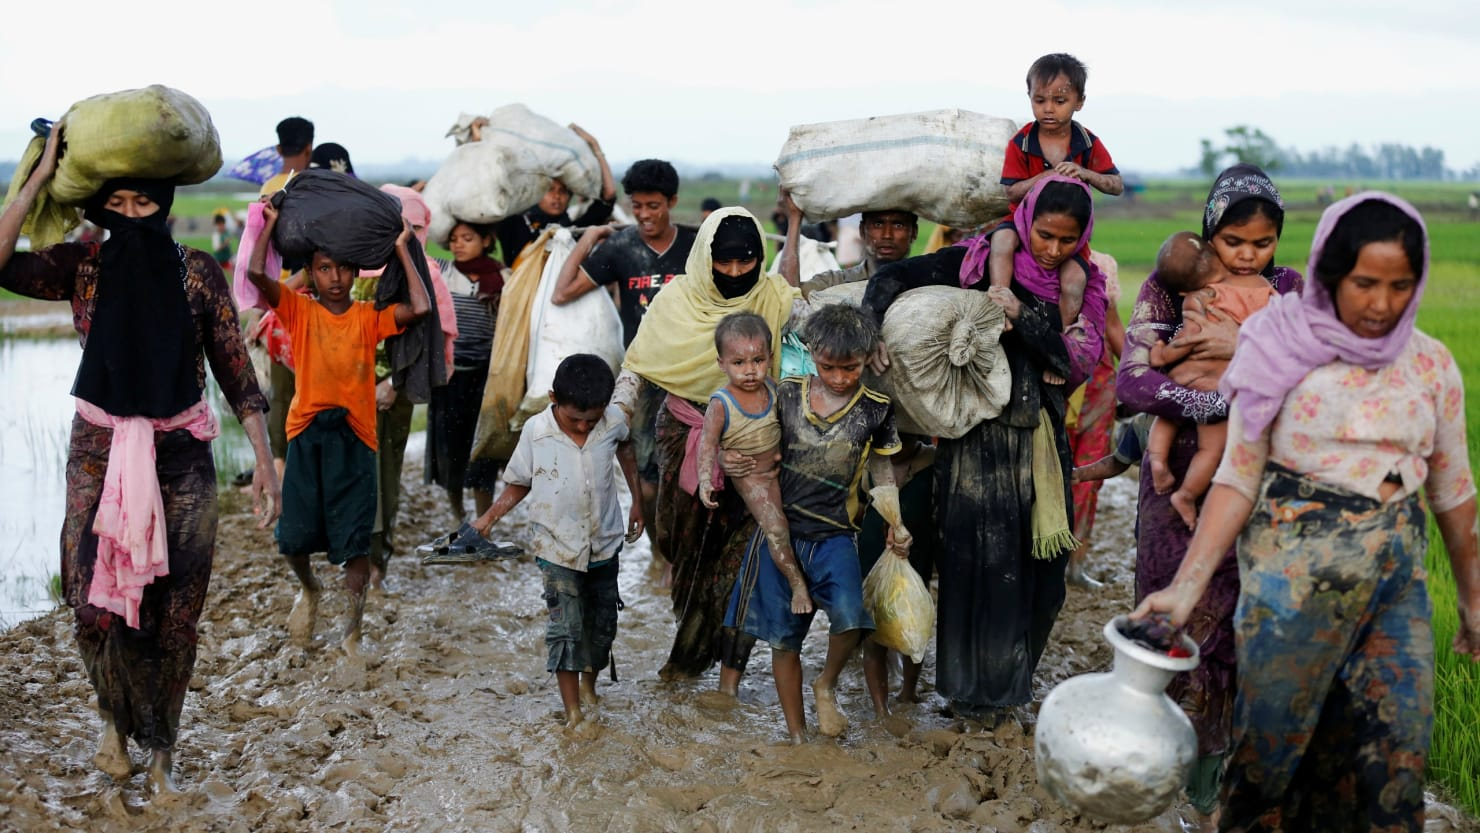 The Rohingya Muslims of Burma are reported to be the most oppressed people on the planet.